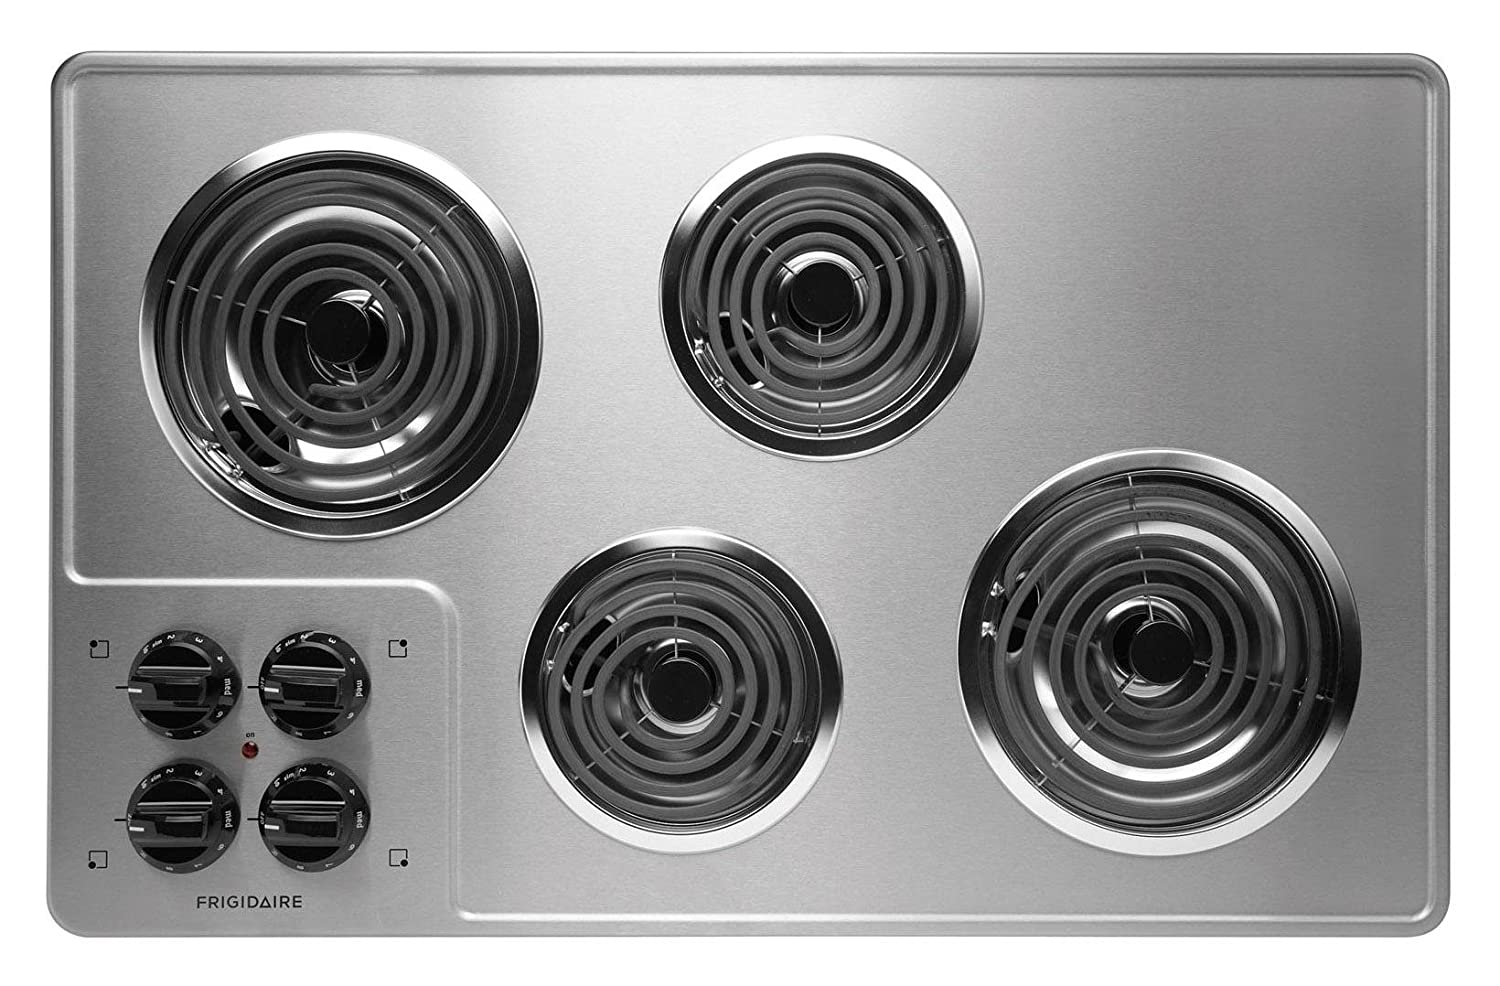 Amazoncom Frigidaire FFEC3205LS 32 Electric Cooktop Stainless